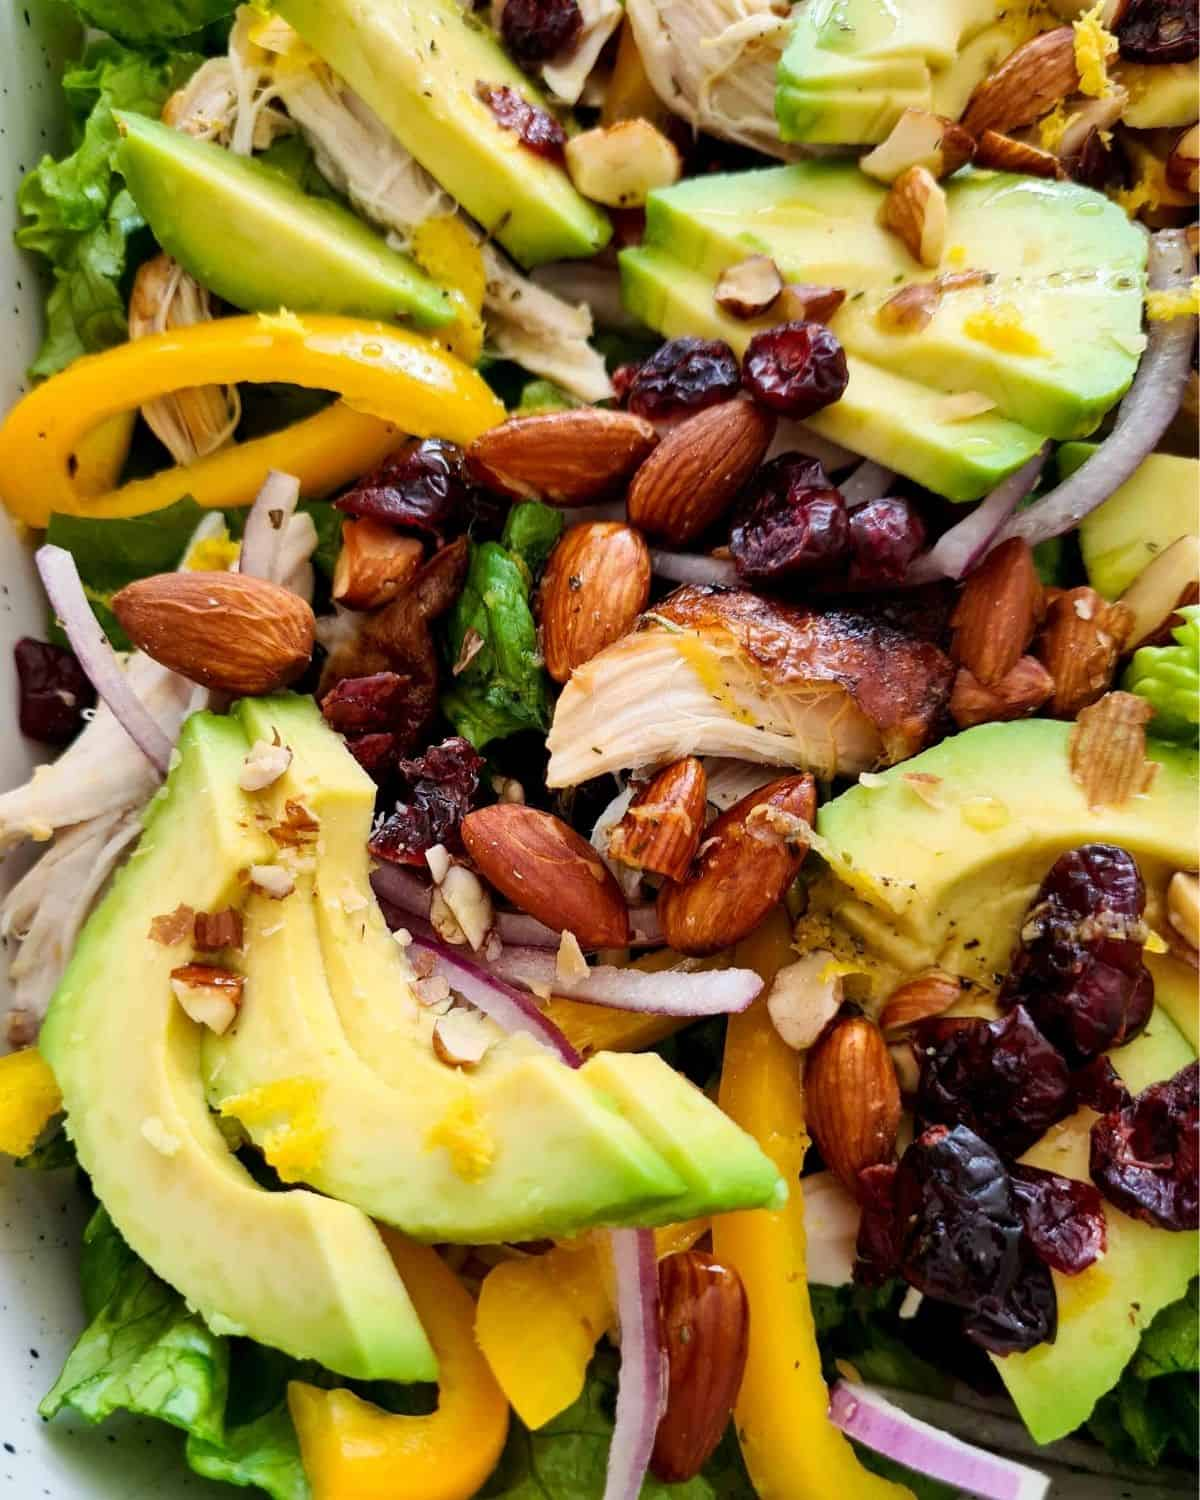 Extrem close up, focusing on roasted almonds, dried cranberries, chicken and avocado